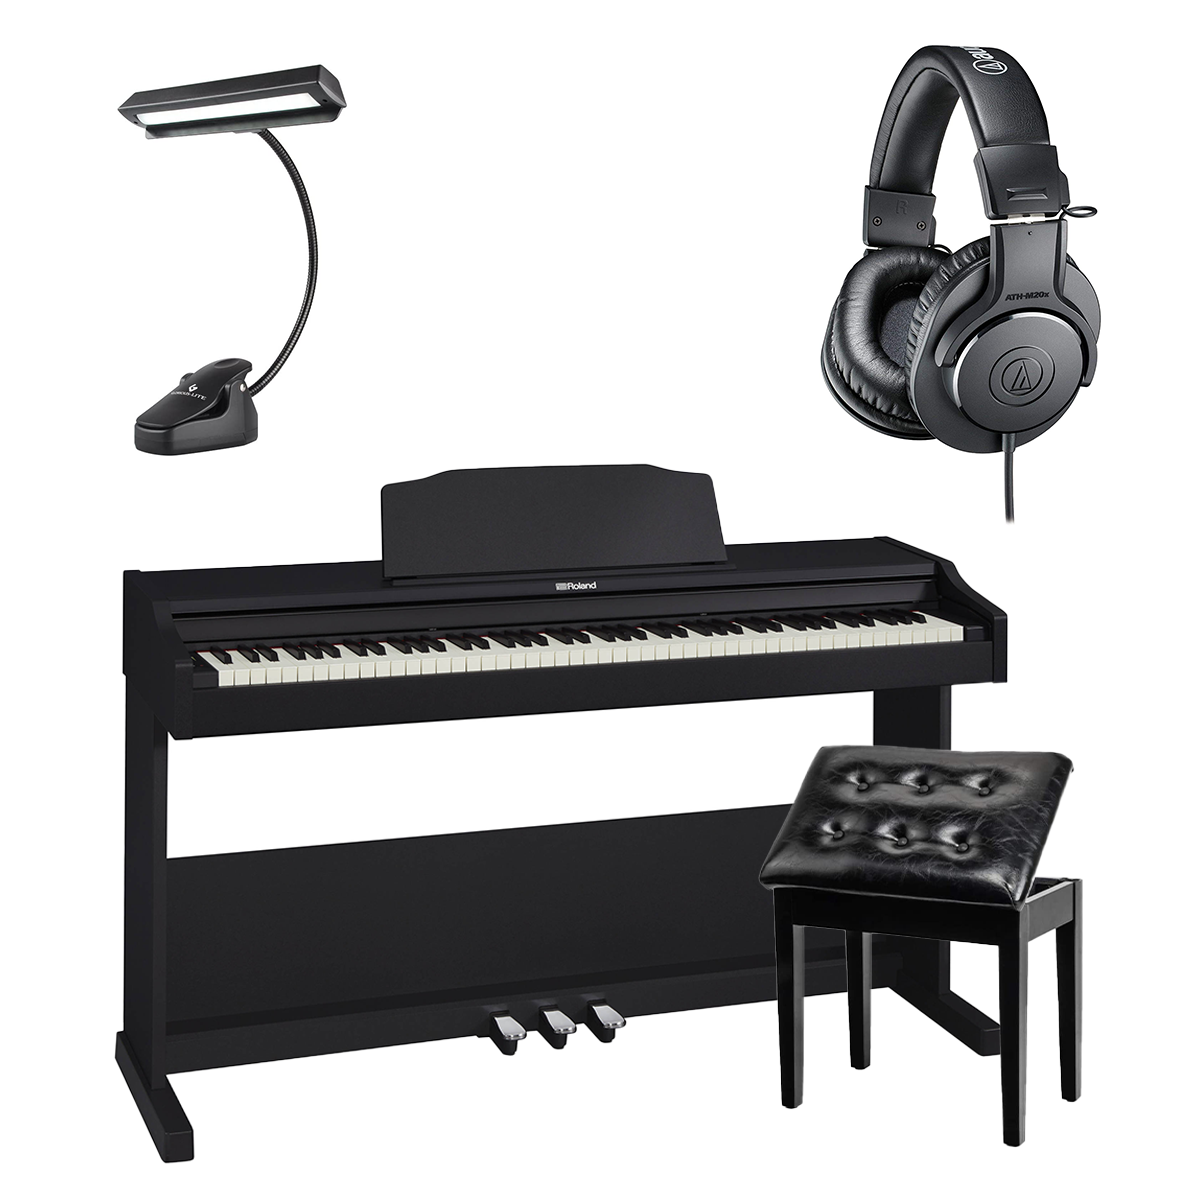 -2 Roland RP-102-BK Digital Piano (Black) - Bonnlo Padded Piano Bench - 14 LED Music Stand Light - AT ATHM20X - $929.99